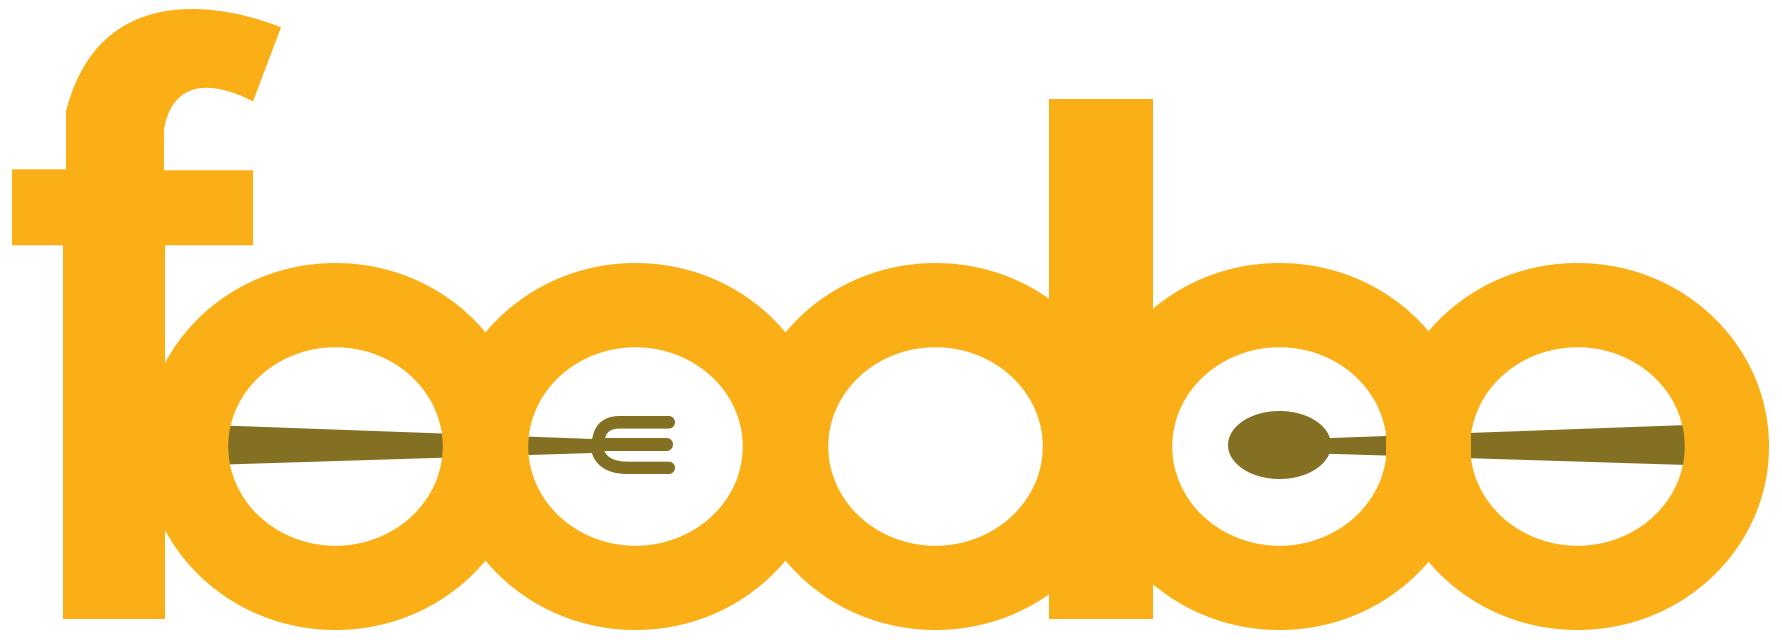 Foodoo | Click To Eat | Online Food Ordering System & Restaurant Solution